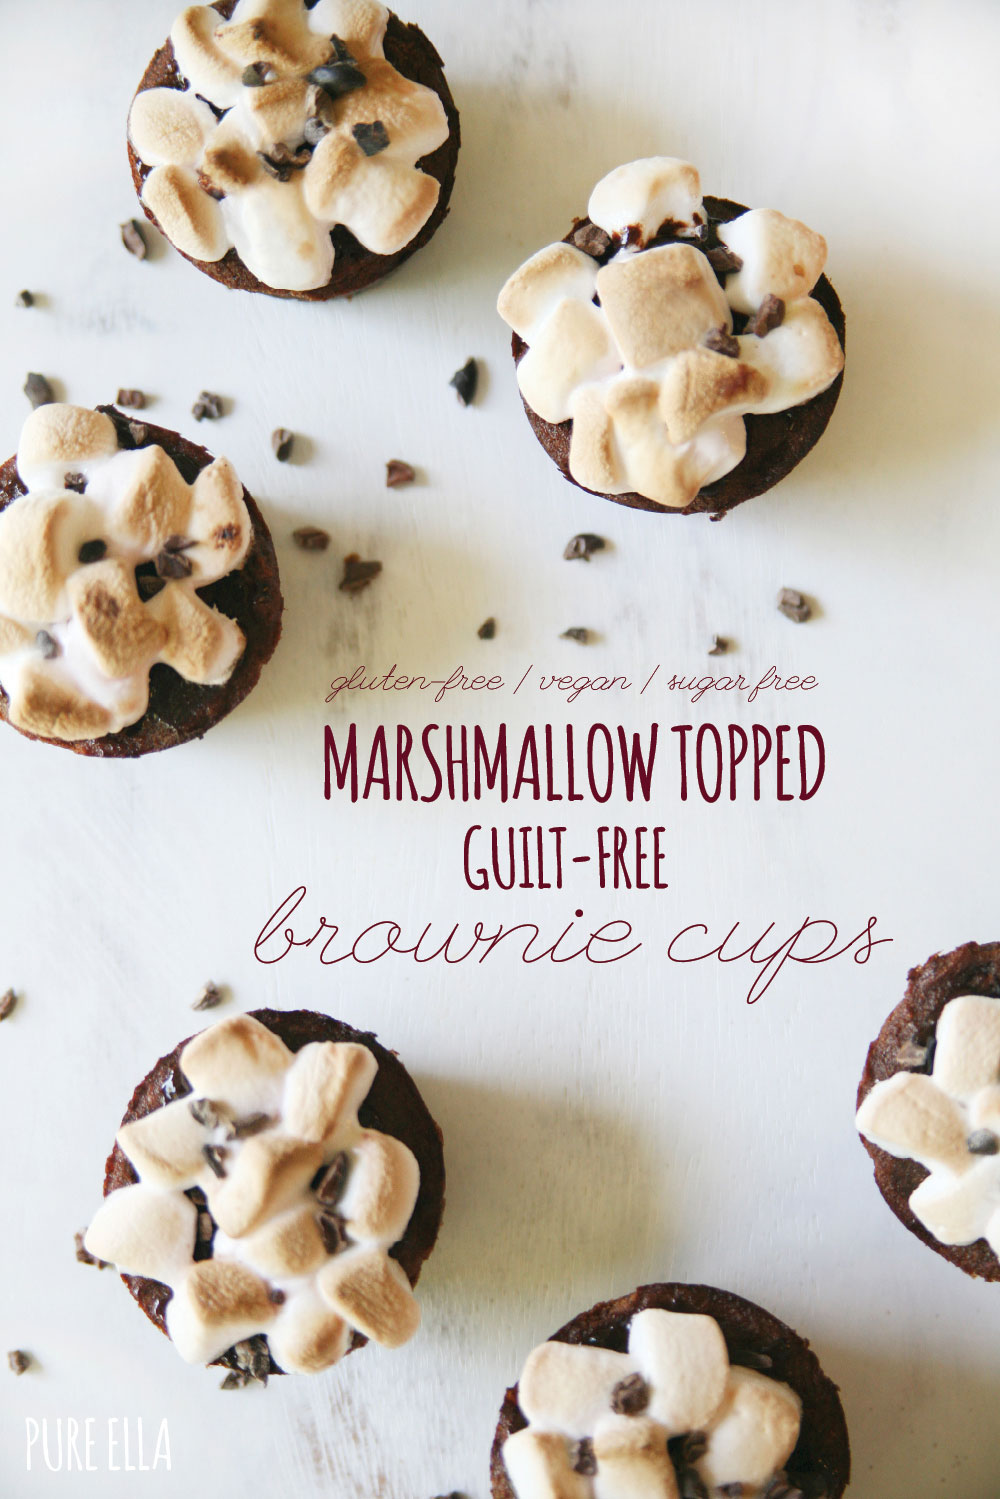 Marshmallow Topping Brownies Pure-ella-marshmallow-topped